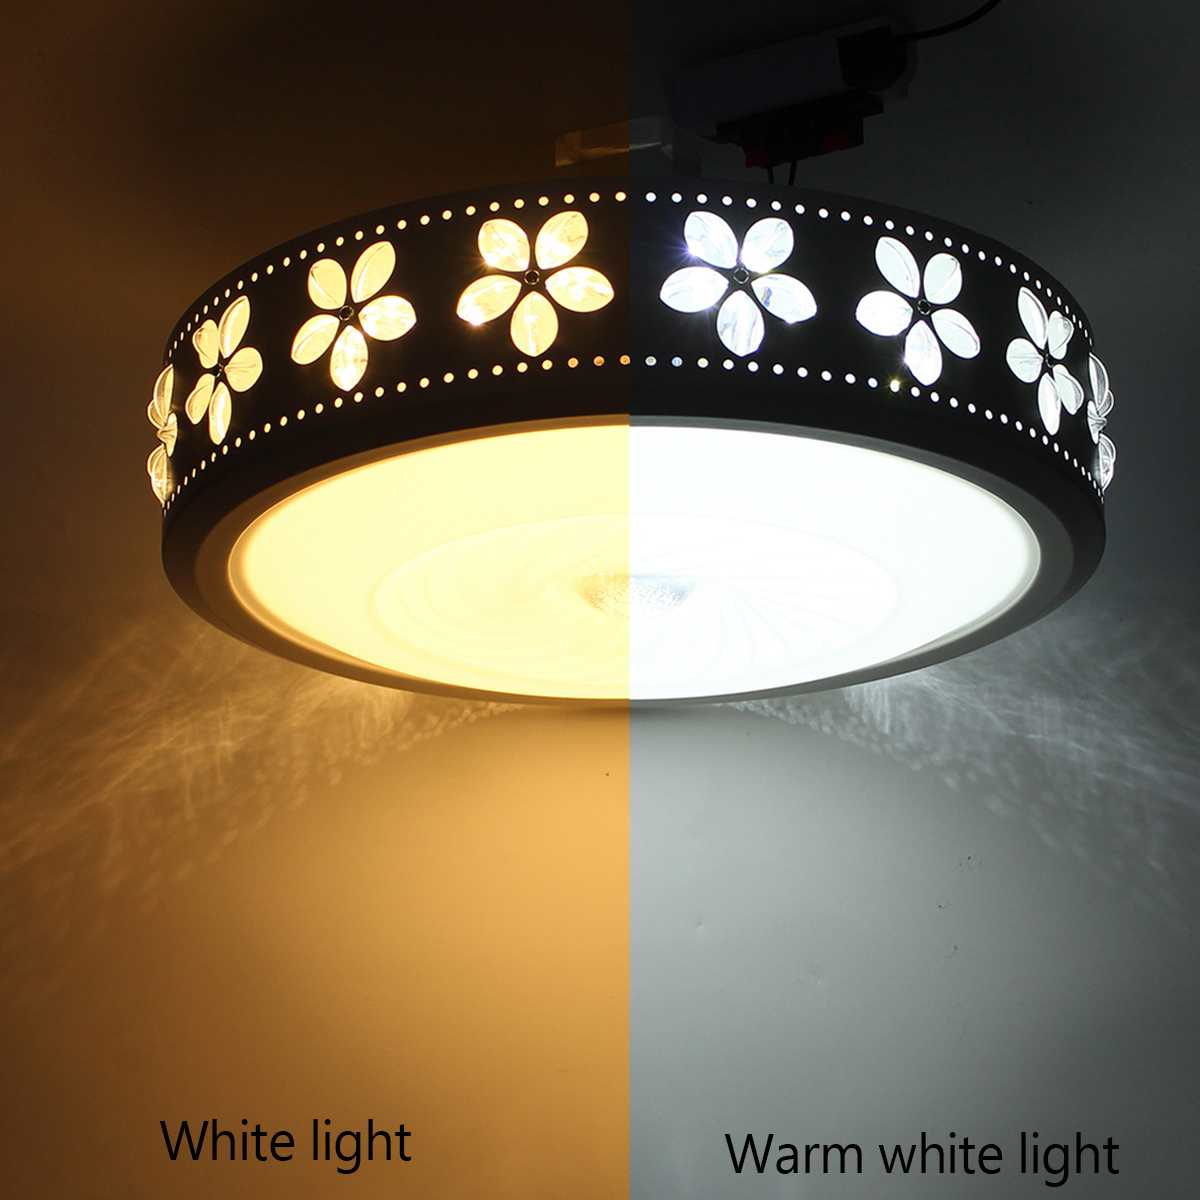 Enthusiastic 24w Round Led Ceiling Lights Modern Flush Mounted Led Ceiling Lamp For Living Room Bedroom Decoration Fixtures Lighting Elegant In Smell Ceiling Lights Lights & Lighting